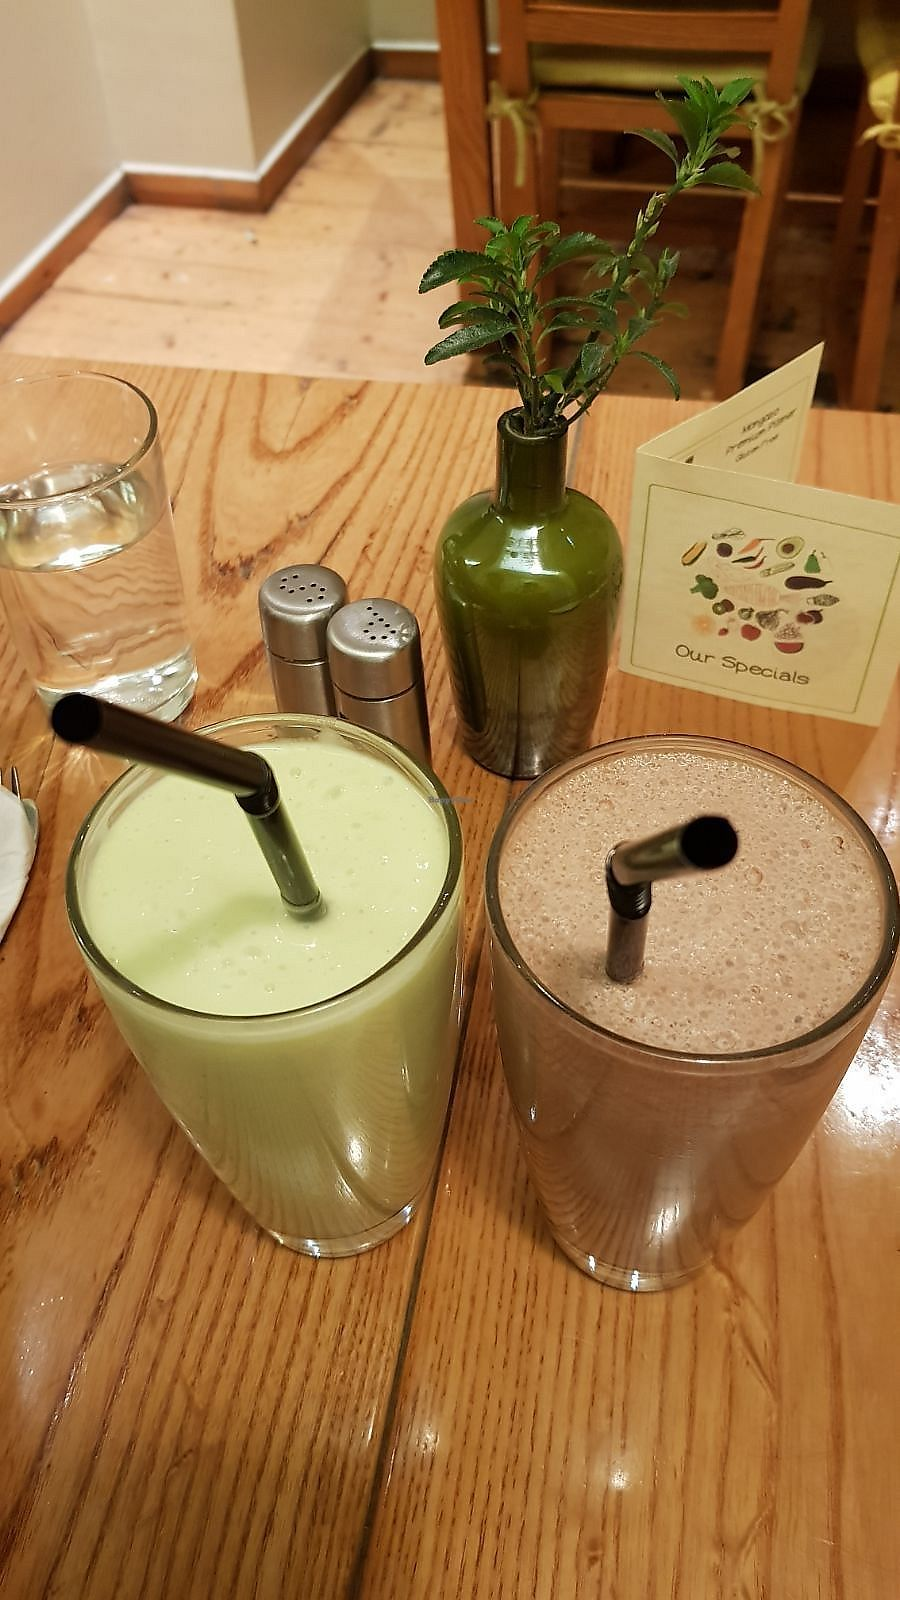 """Photo of Avocado  by <a href=""""/members/profile/vegan.goddammit"""">vegan.goddammit</a> <br/>Avocado- and cacaosmoothie <br/> March 7, 2018  - <a href='/contact/abuse/image/26015/367914'>Report</a>"""